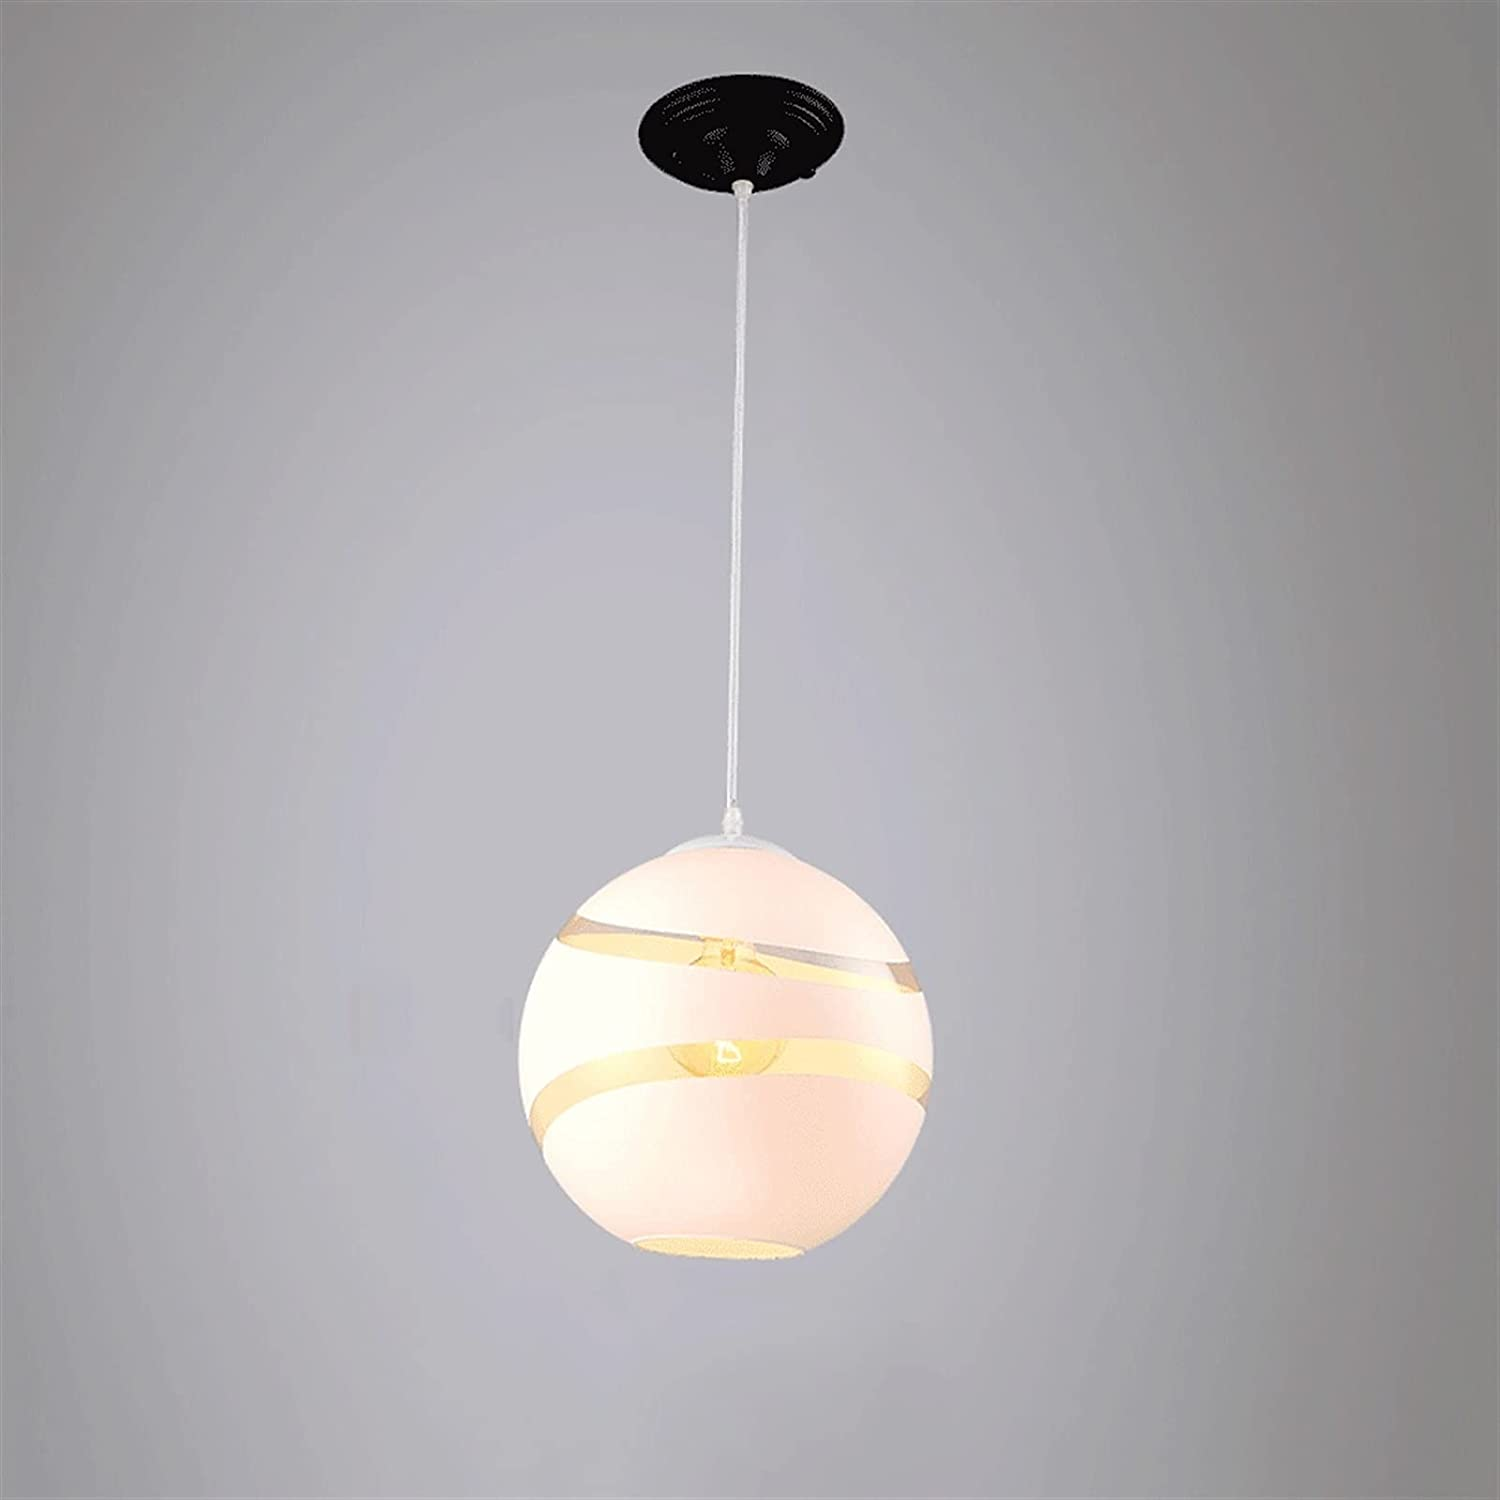 Chandelier Ranking integrated 1st place Fixture 5W Bedside Lam Glass Lamp Fixed price for sale Pendant